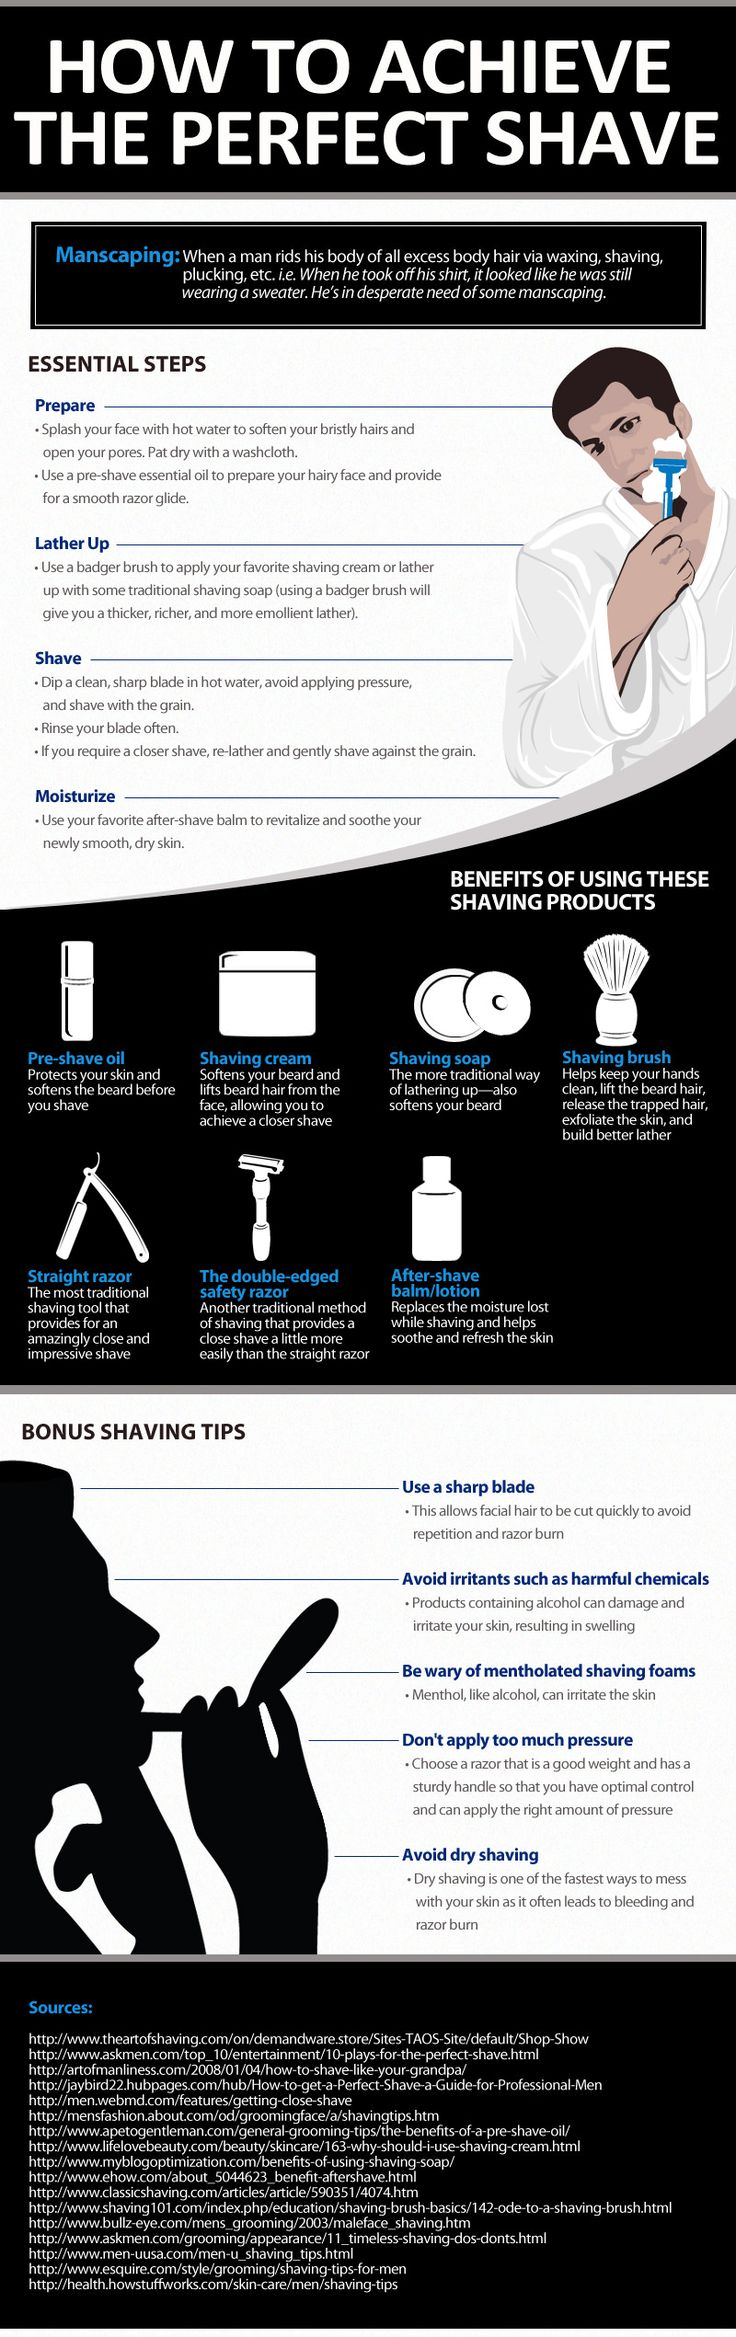 Here is a really informative how to style graphic teaching men how to get the perfect shave.